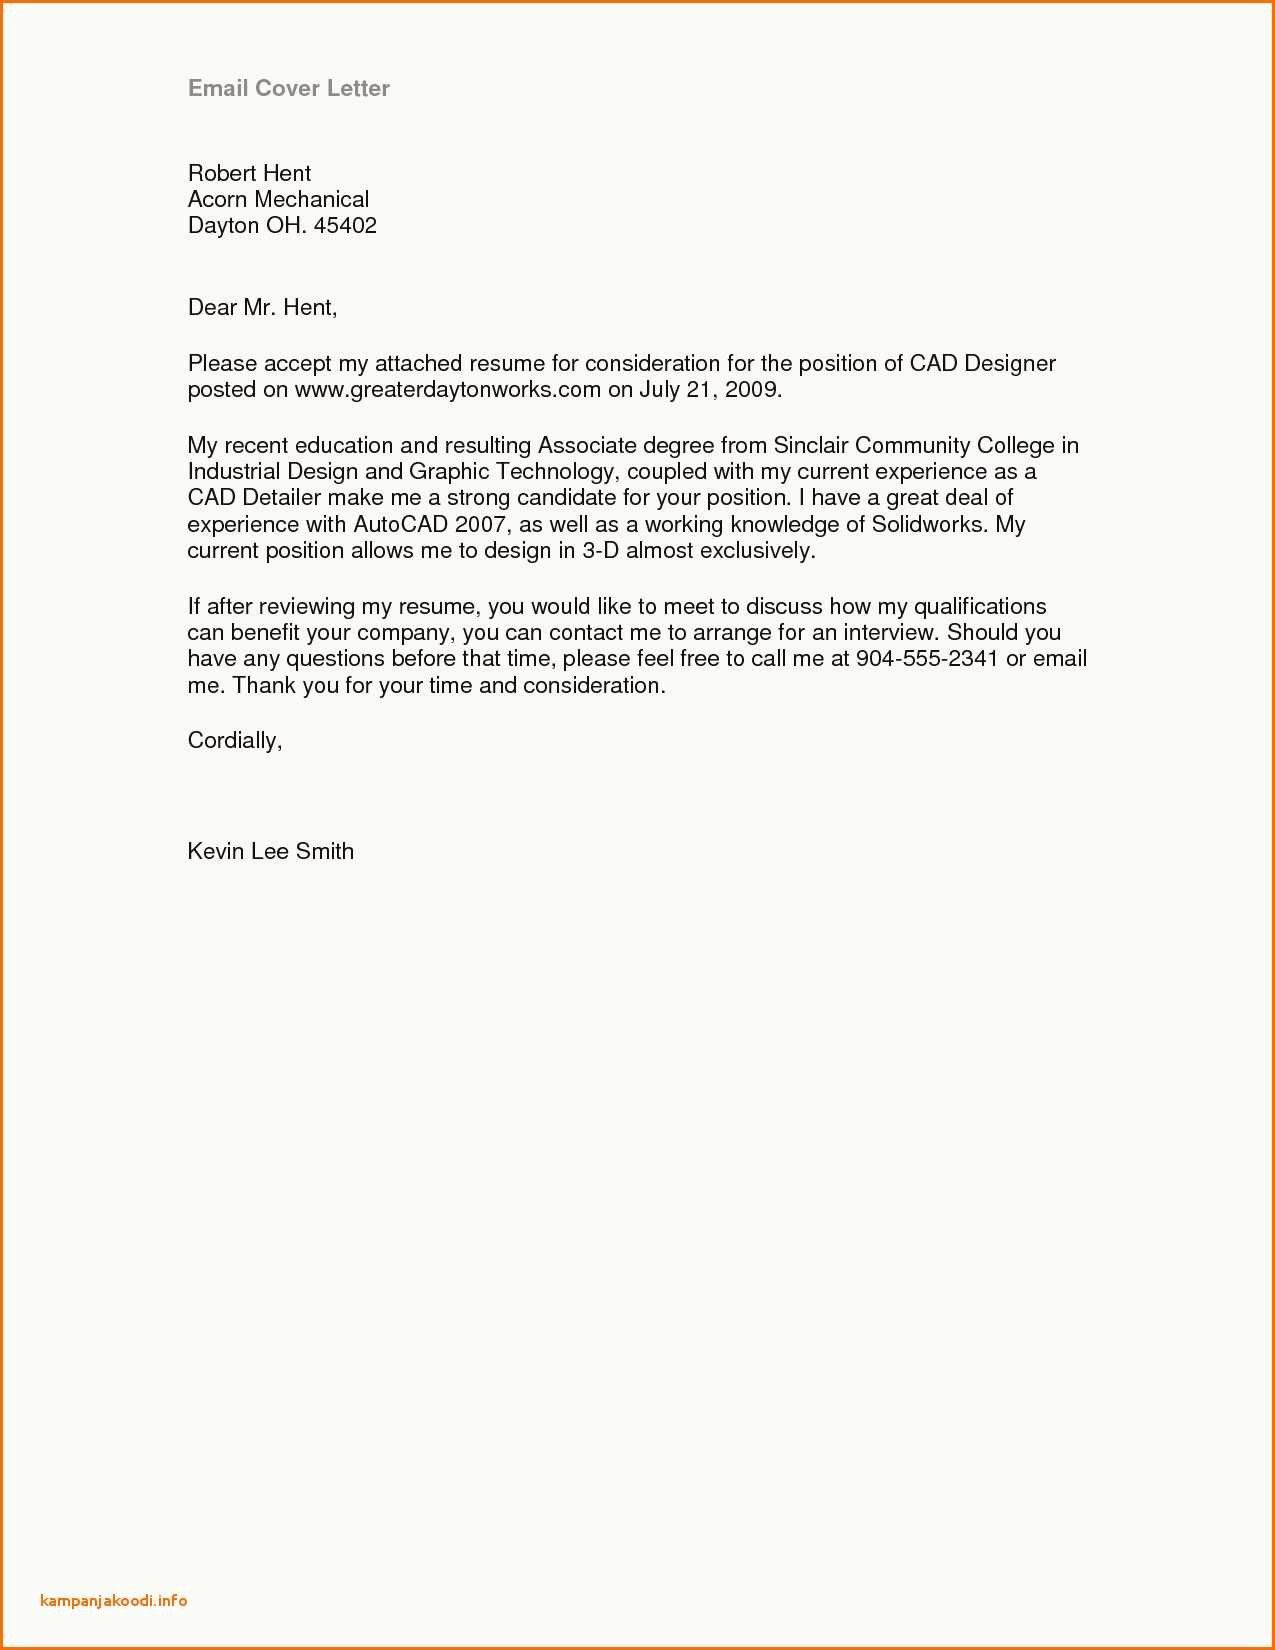 Best Of Job Application Cover Letter Template Free Cover Letter For Resume Job Application Cover Letter Email Cover Letter